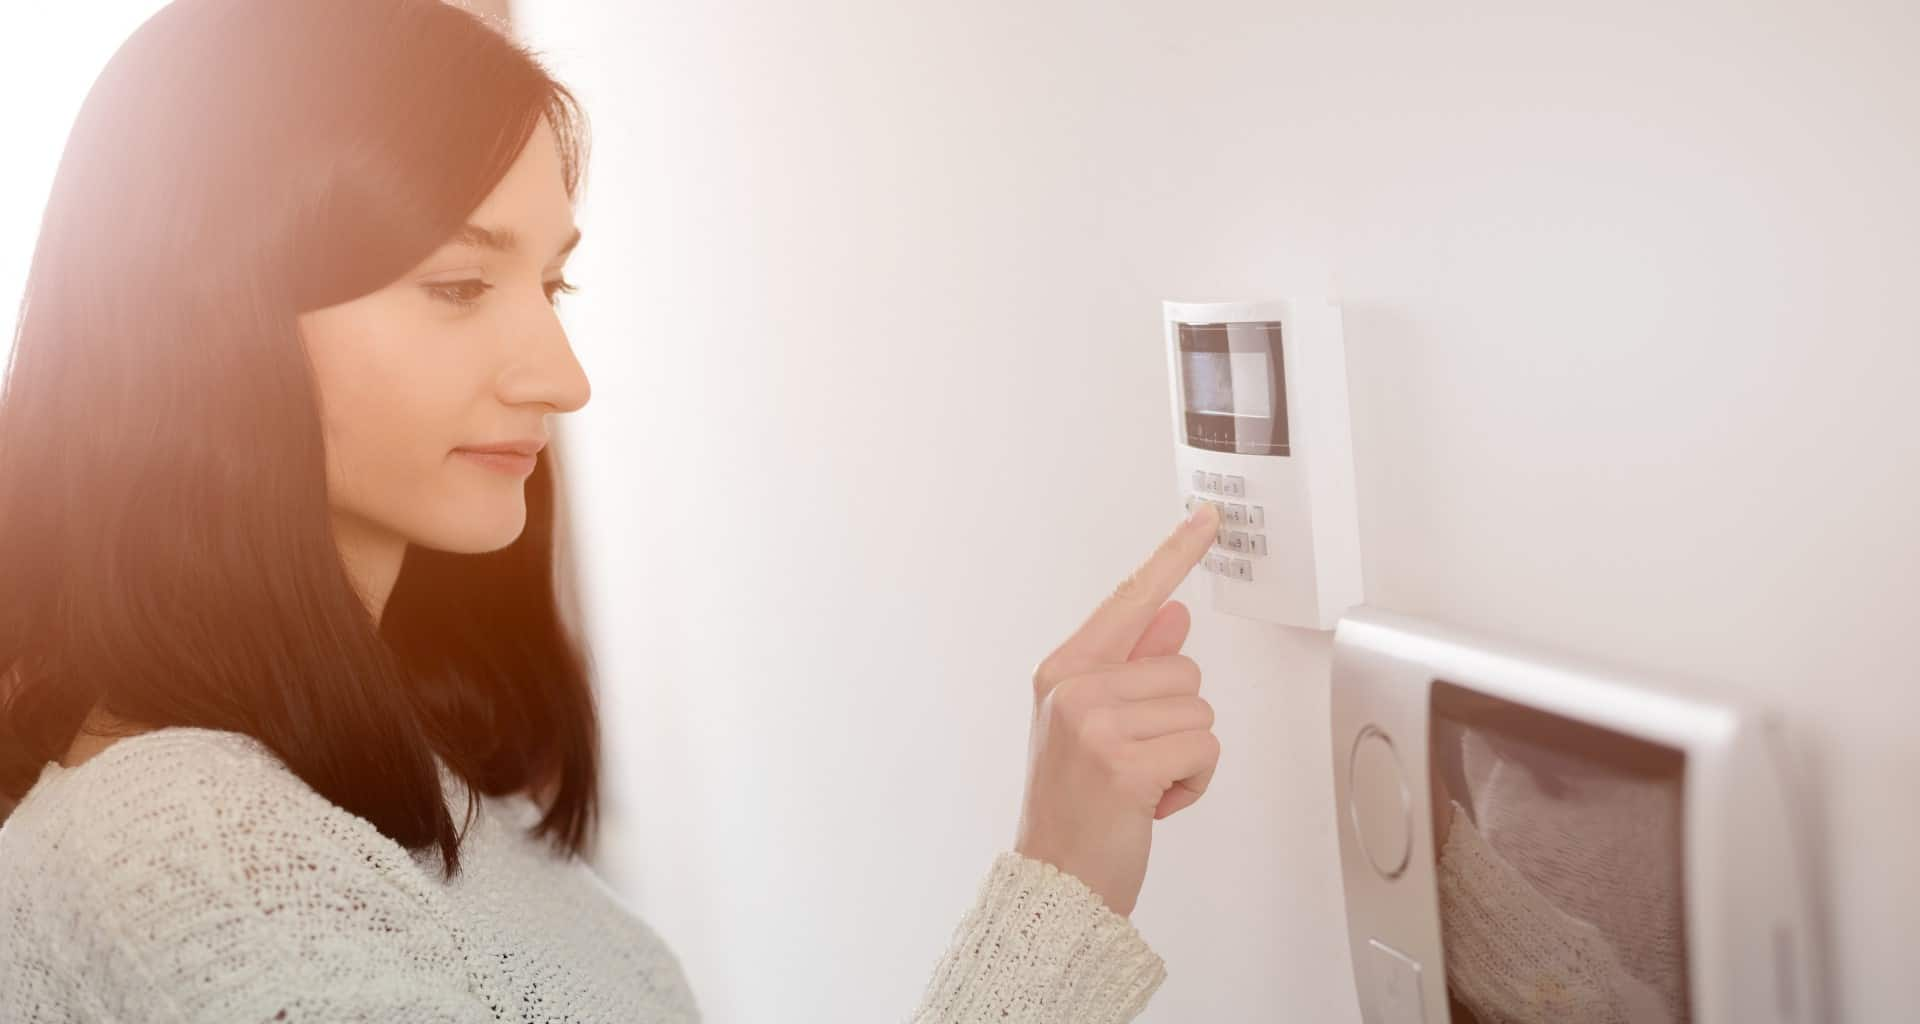 is DIY home security better?